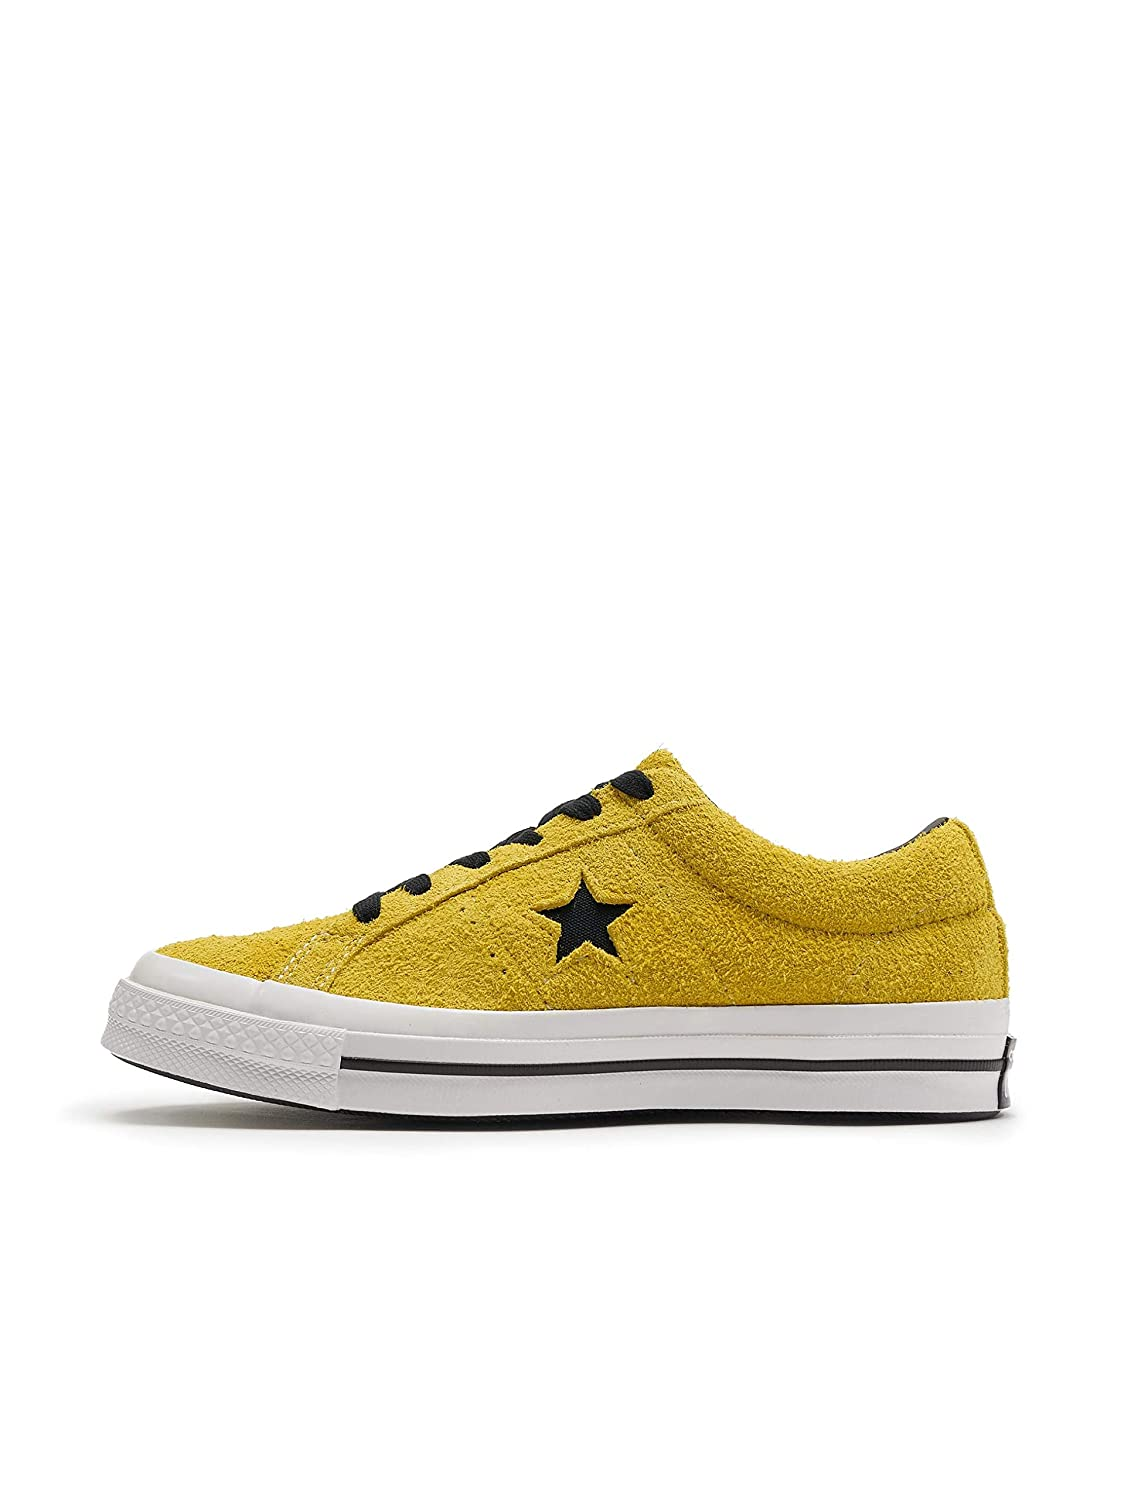 b29fe717c92a Converse Unisex Adults  Lifestyle One Star Ox Suede Fitness Shoes   Amazon.co.uk  Shoes   Bags